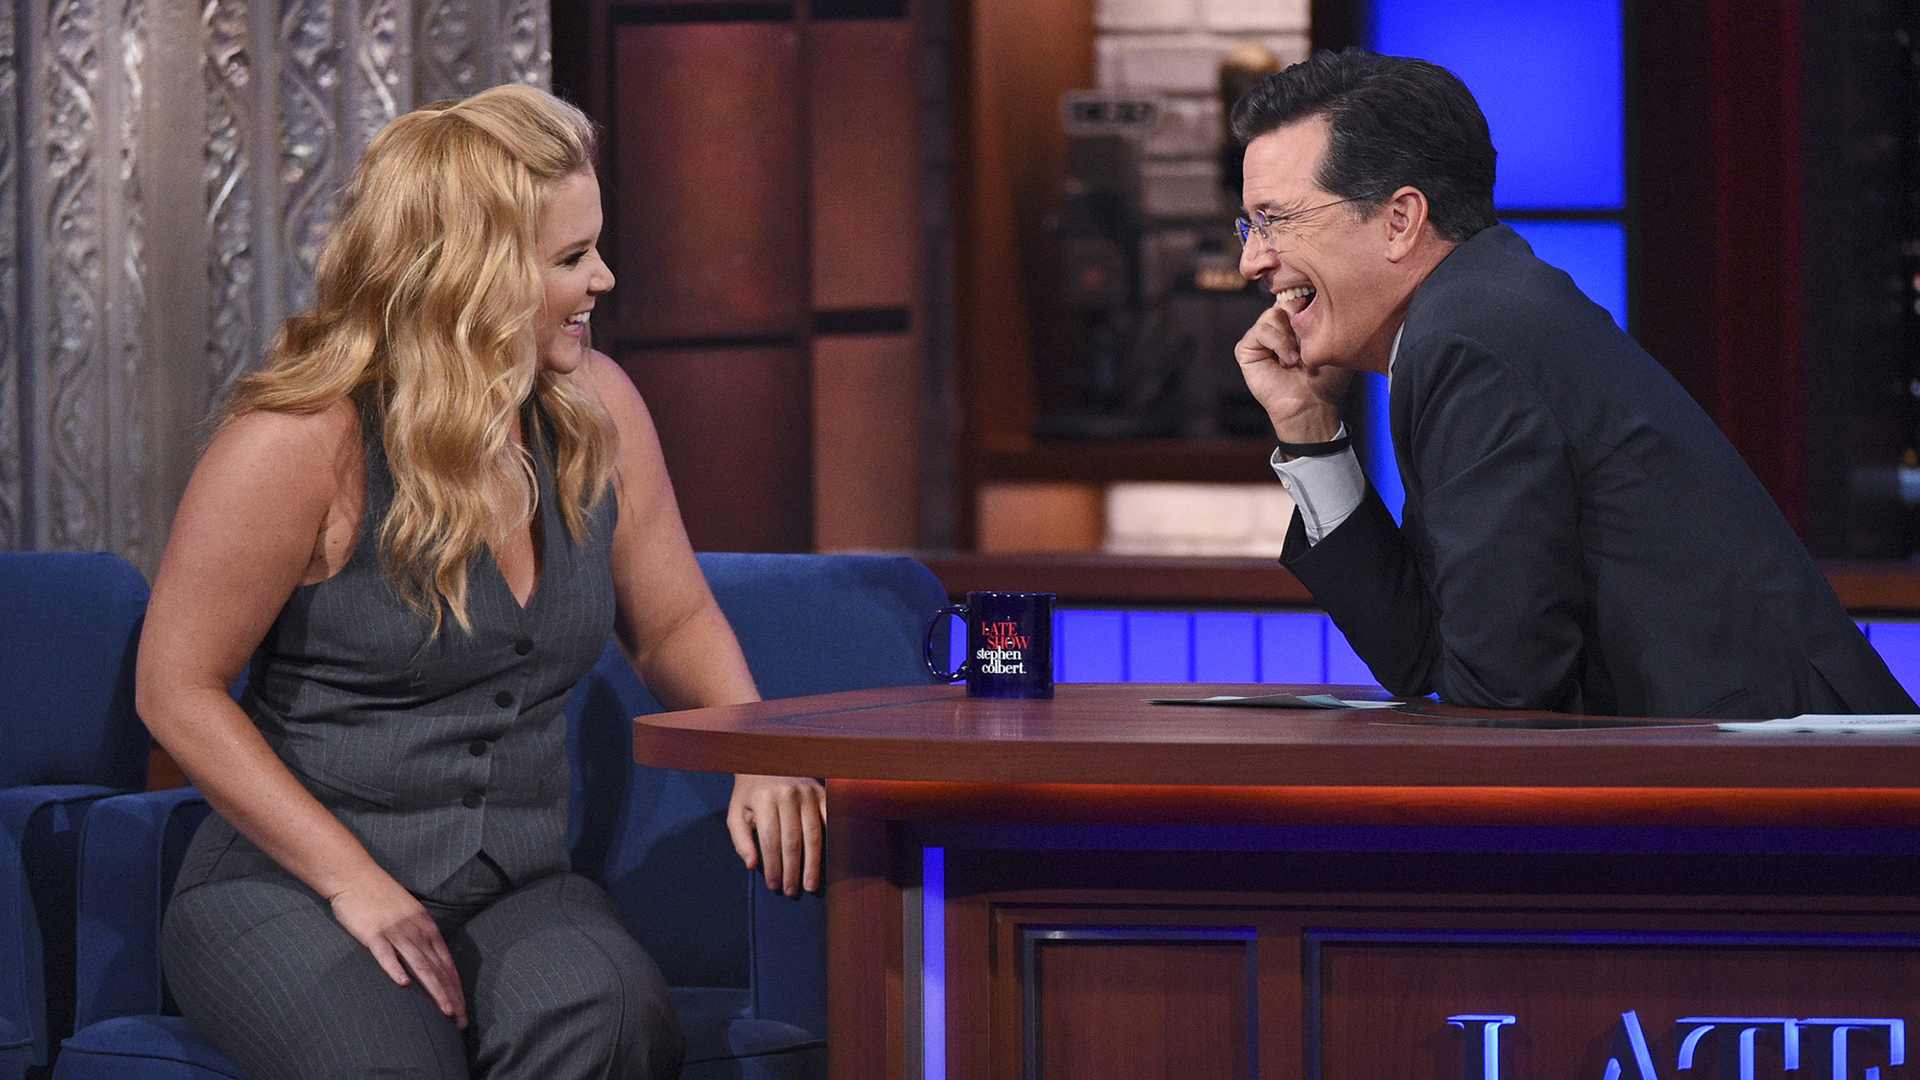 Amy Schumer and Stephen Colbert